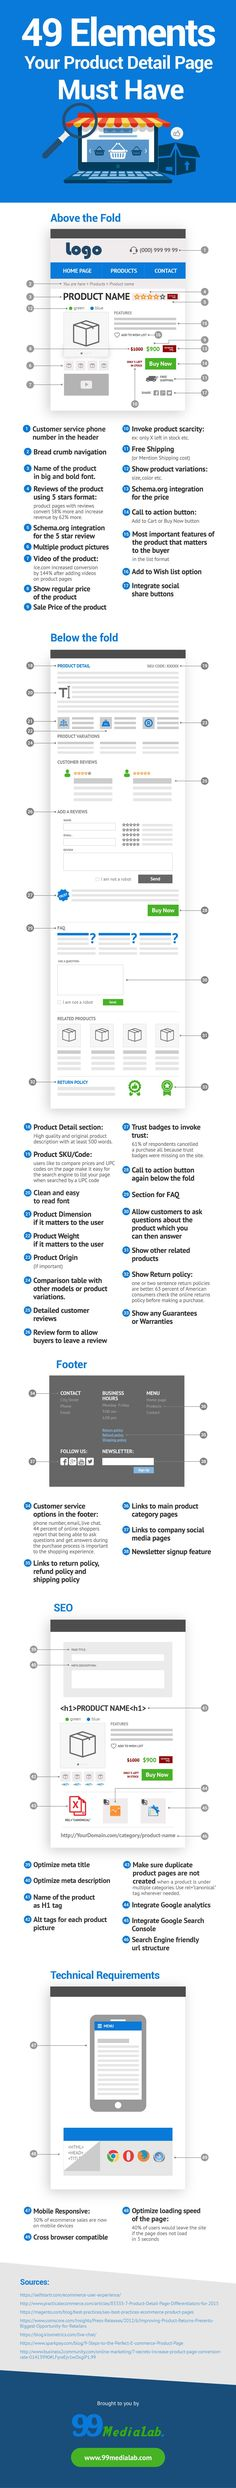 #Ecommerce Tips: 49 Elements of a Successful Product Page #Infographic #WebDesign